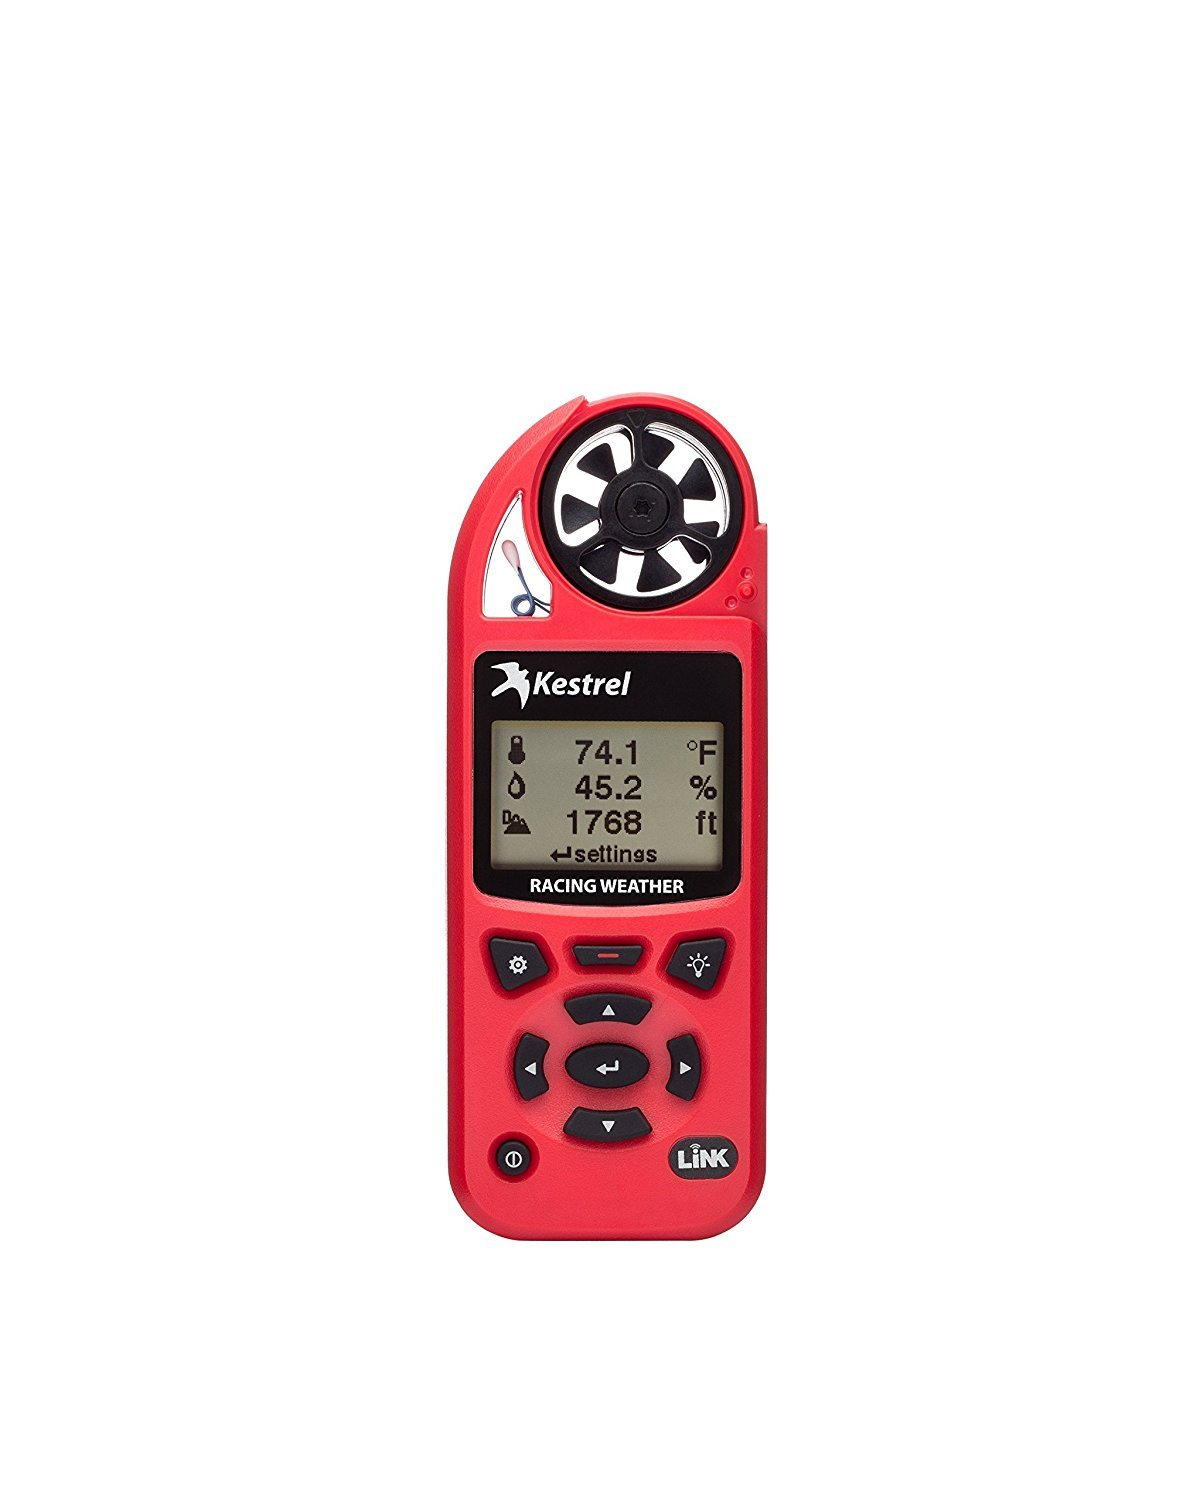 Kestrel 5100 Racing Weather Meter with LiNK by Kestrel   B017AF17M2